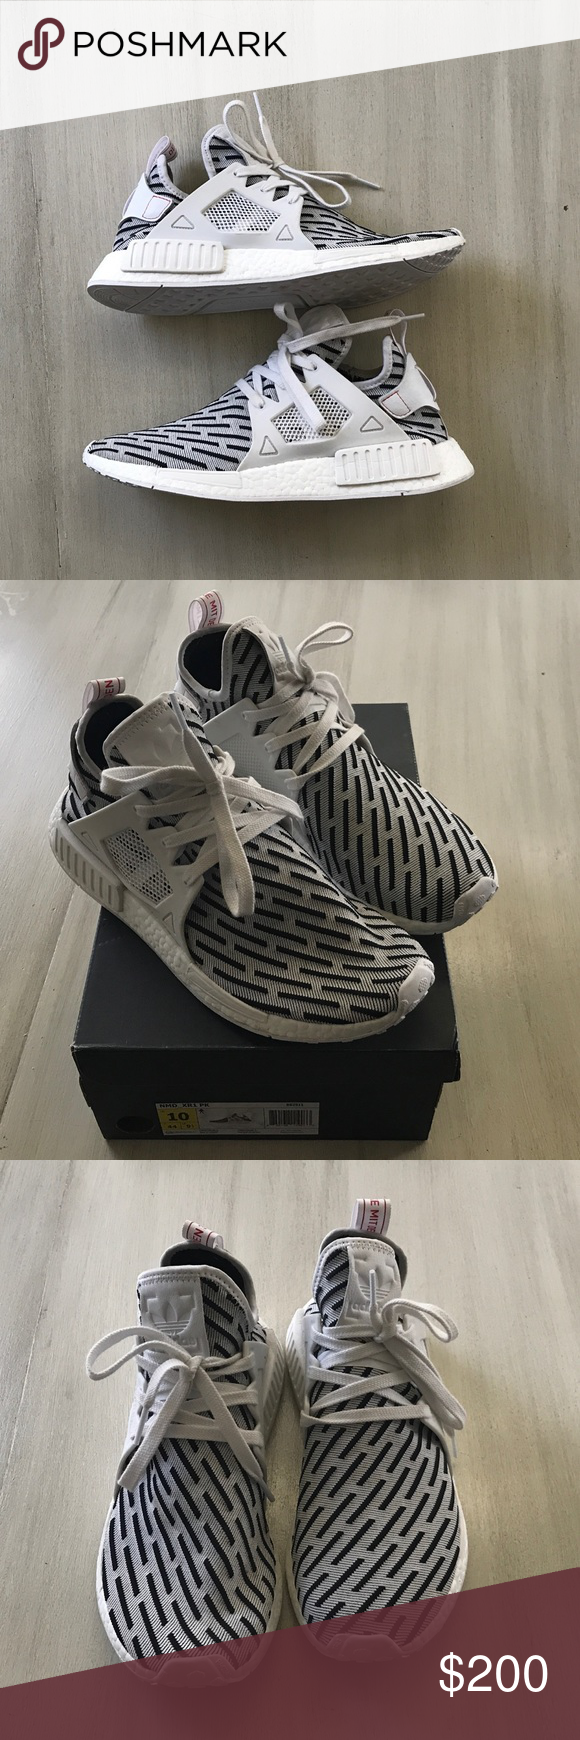 Adidas Originals NMD XR1 Primeknit These NMD XR1 fit true to size. They are lightweight and really comfortable. This pair is in excellent/like new condition. Worn only twice. 100% Authentic, purchased from Adidas store. adidas Shoes Sneakers